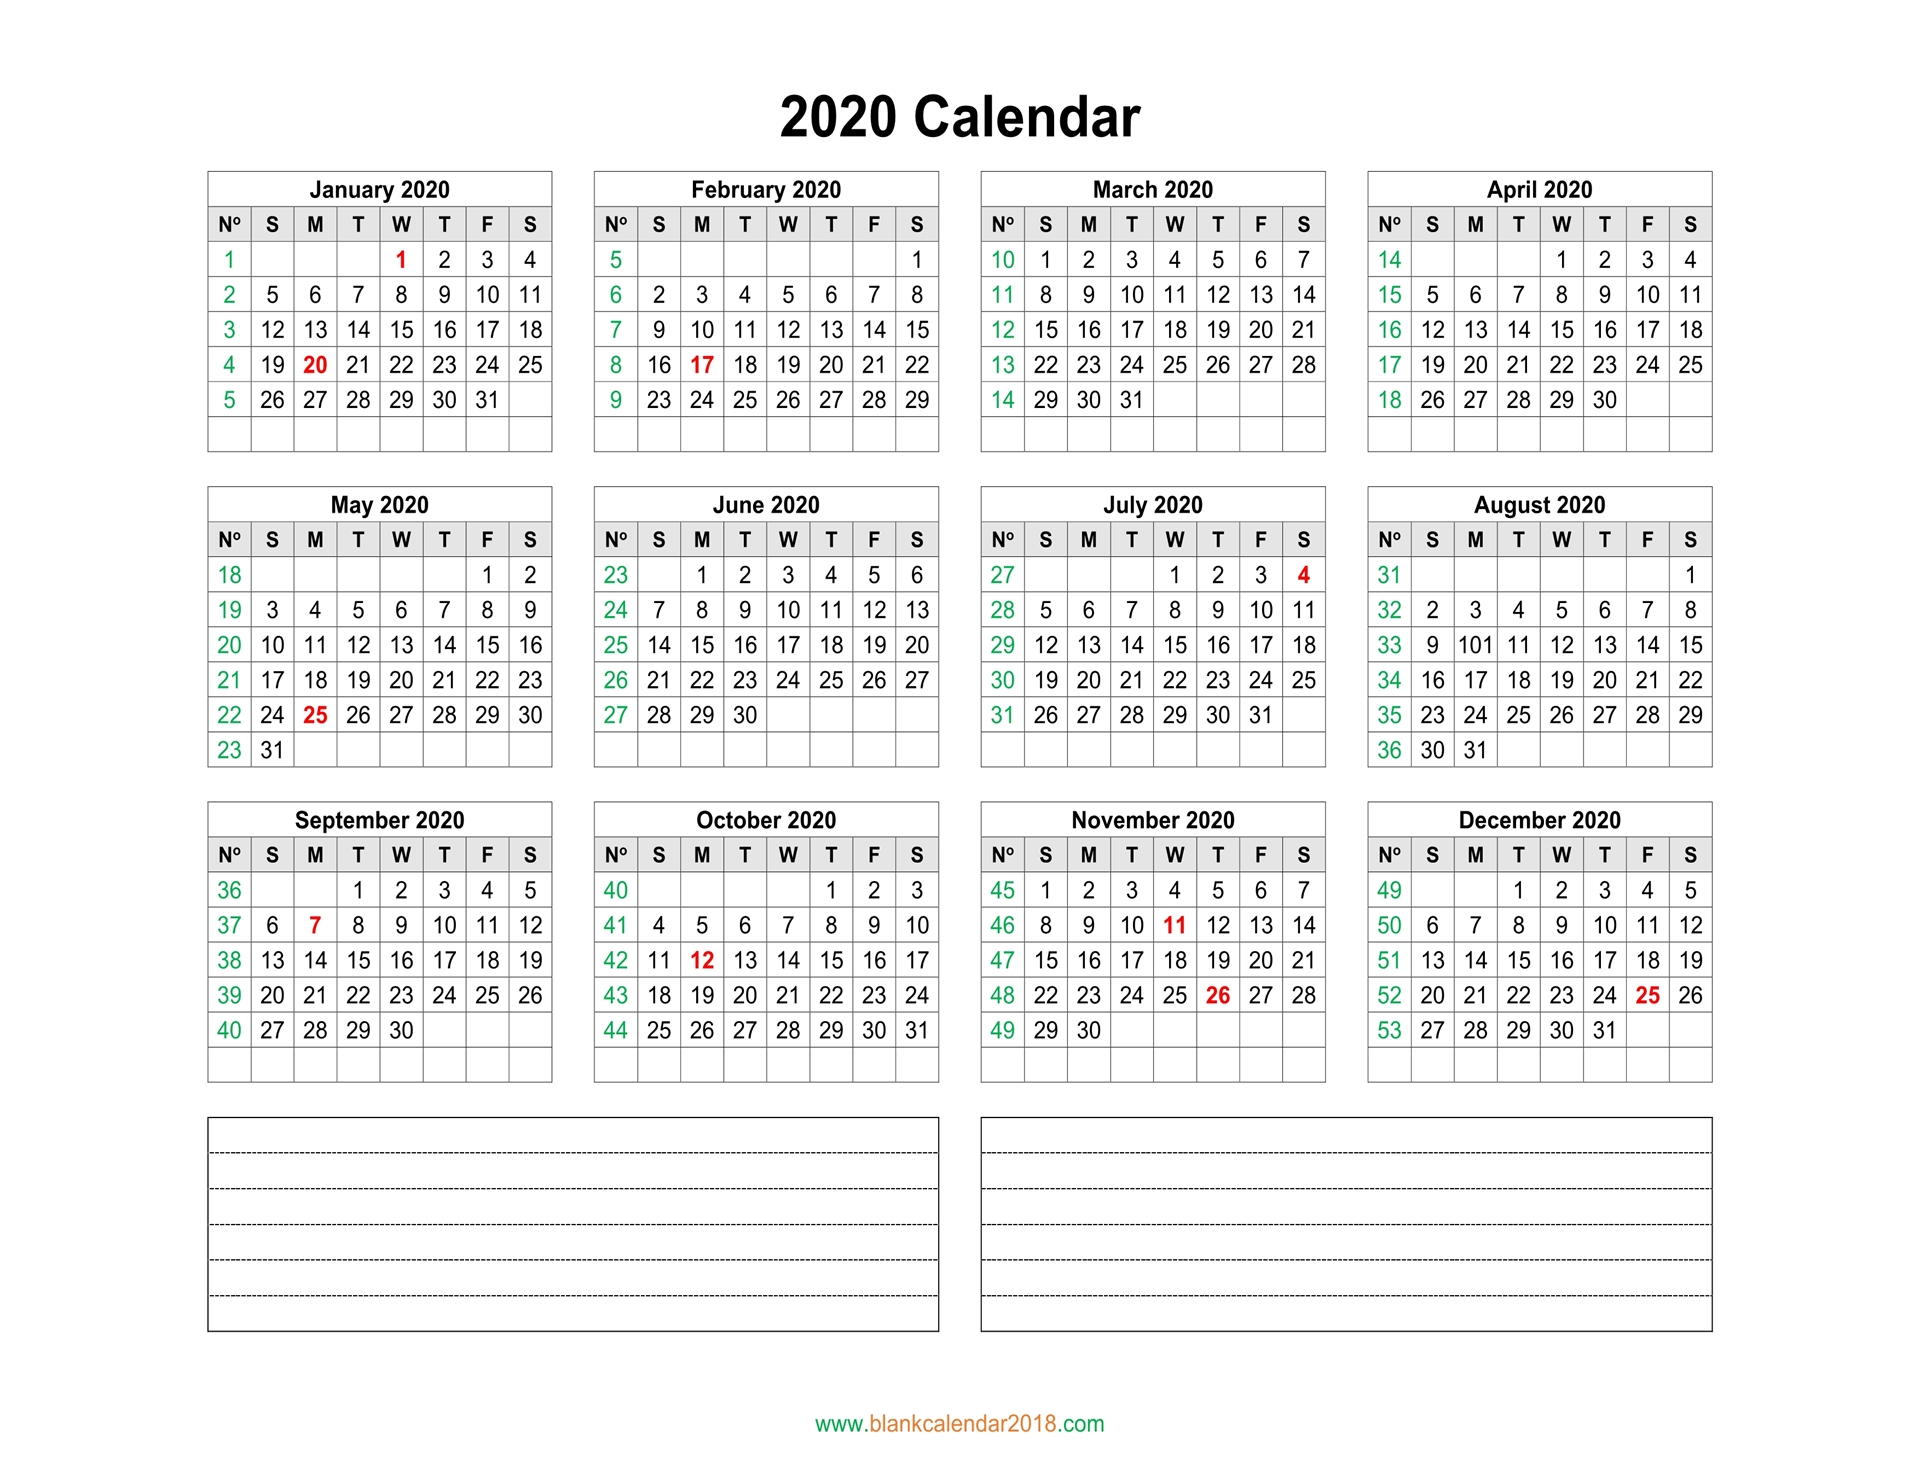 Blank Calendar 2020 for 2020 Monthly Calinder With Week Numbers